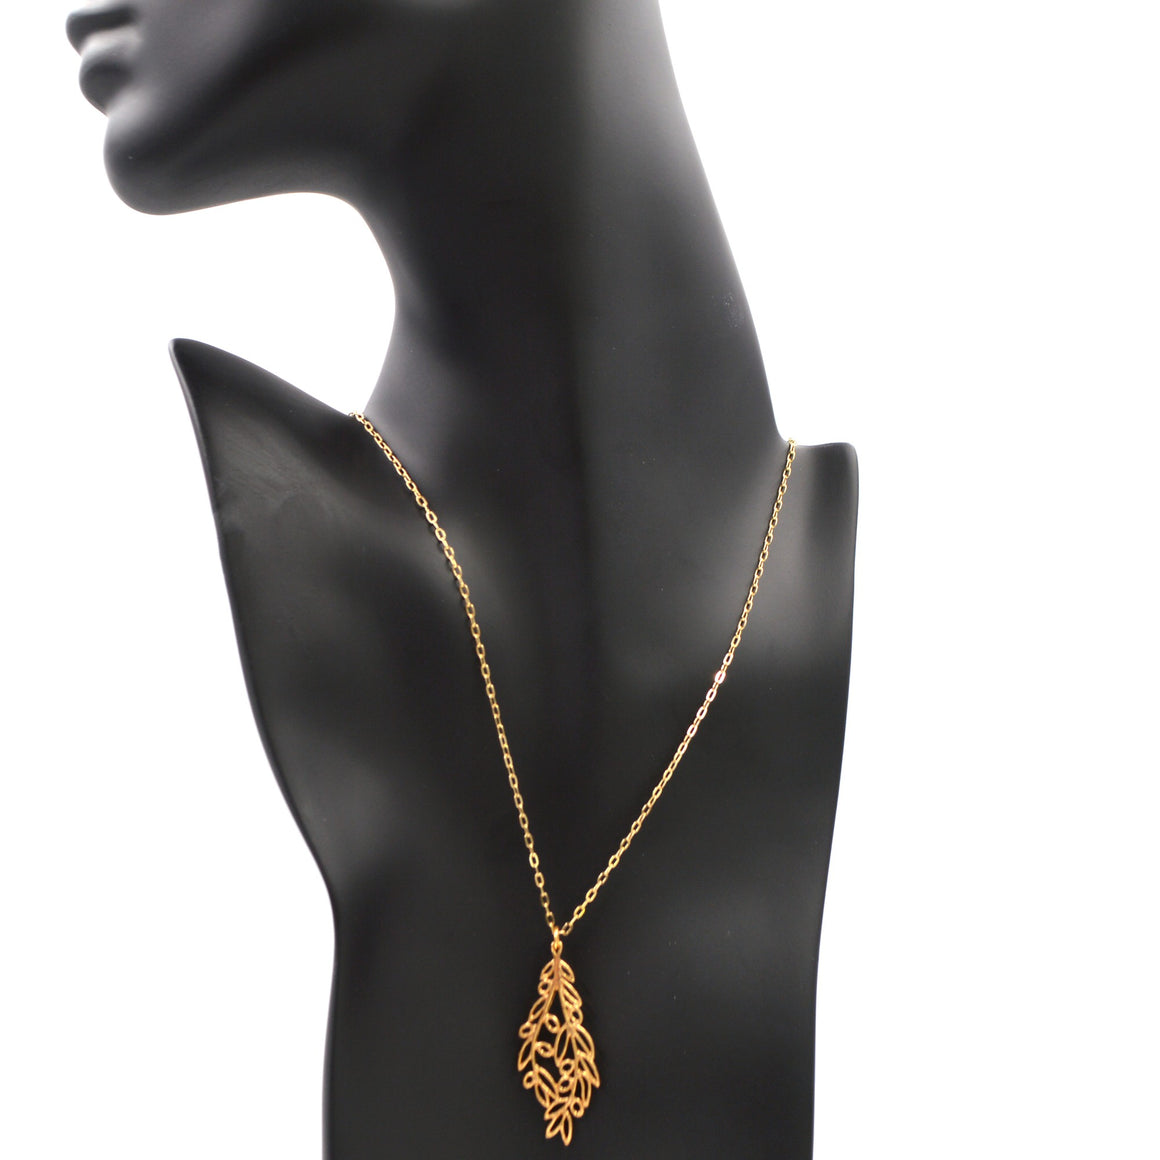 Olive Branch Pendant Necklace - 24K Gold Plated